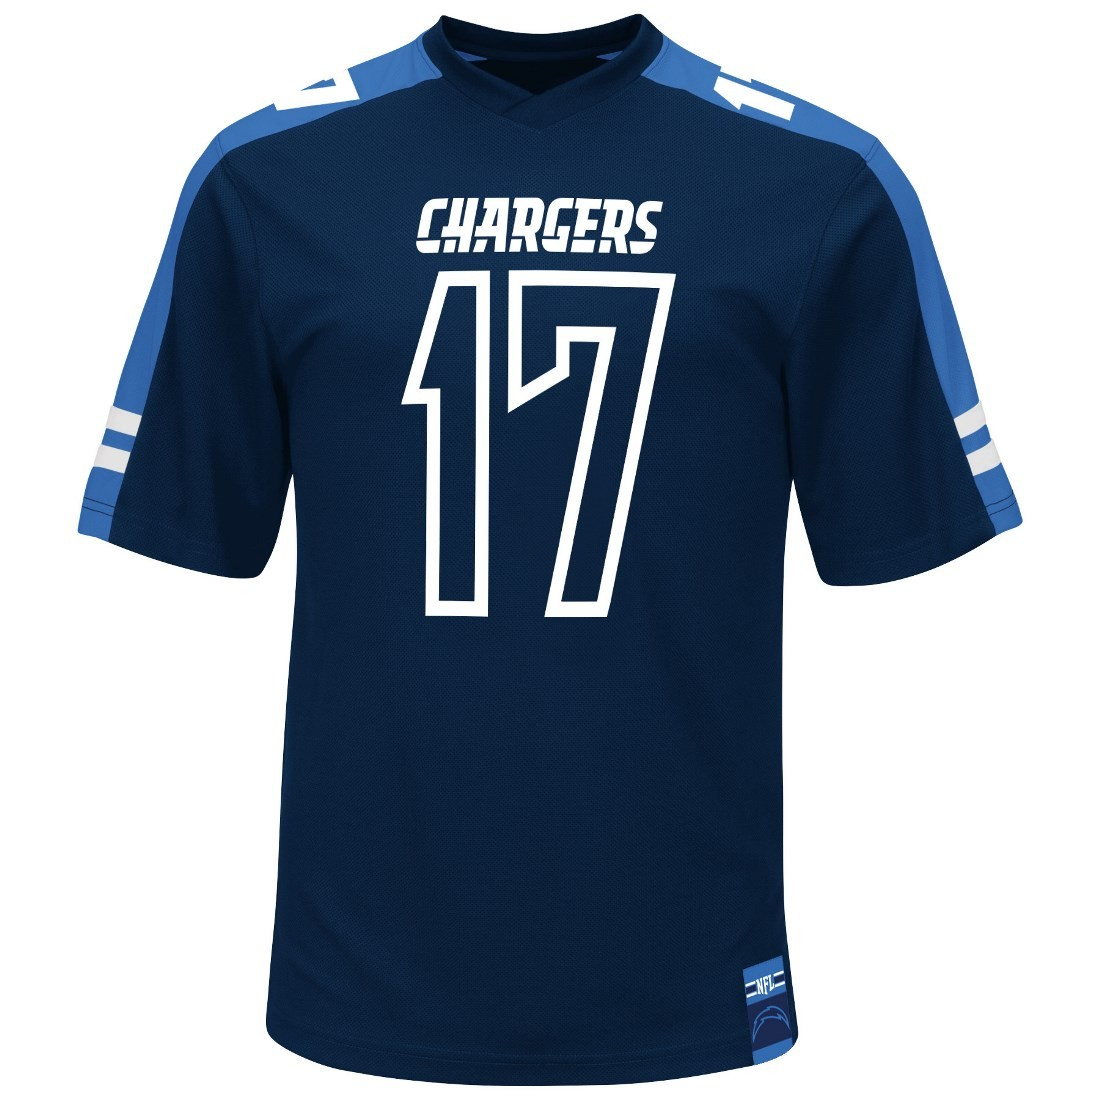 """San Diego Chargers Authentic Jerseys: Philip Rivers San Diego Chargers Majestic NFL """"Hashmark"""